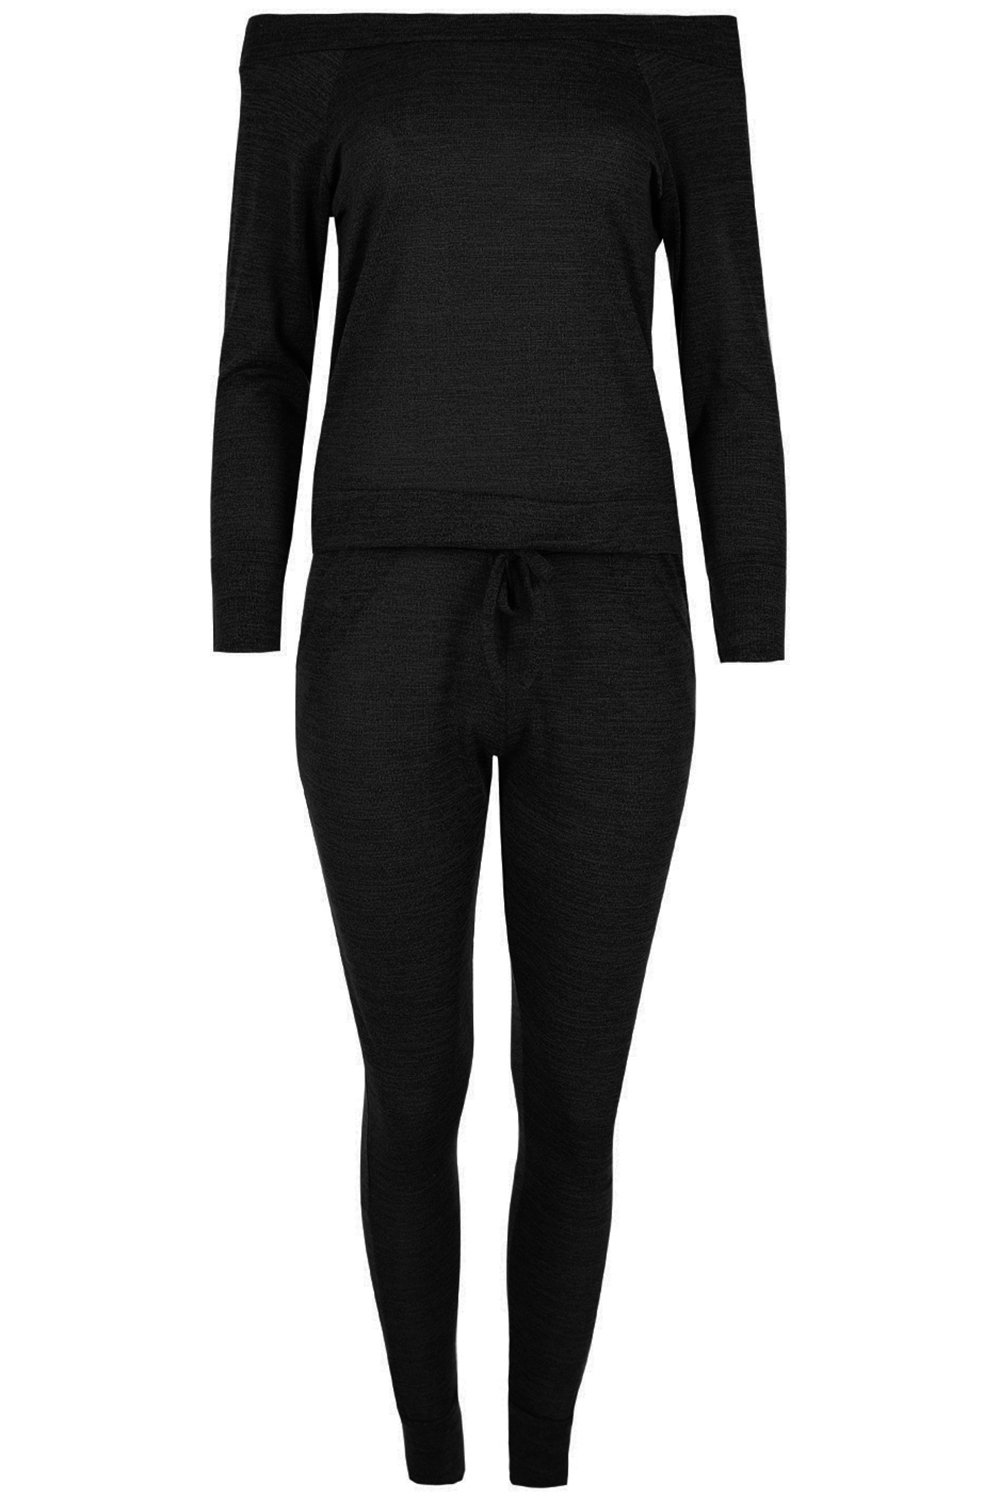 Be Jealous Womens Off The Shoulder Tracksuit Ladies Bardot Marl Knitted Pocket Legging Jog Suit Oversized Baggy Top Loungewear Set Plus Size 8-22